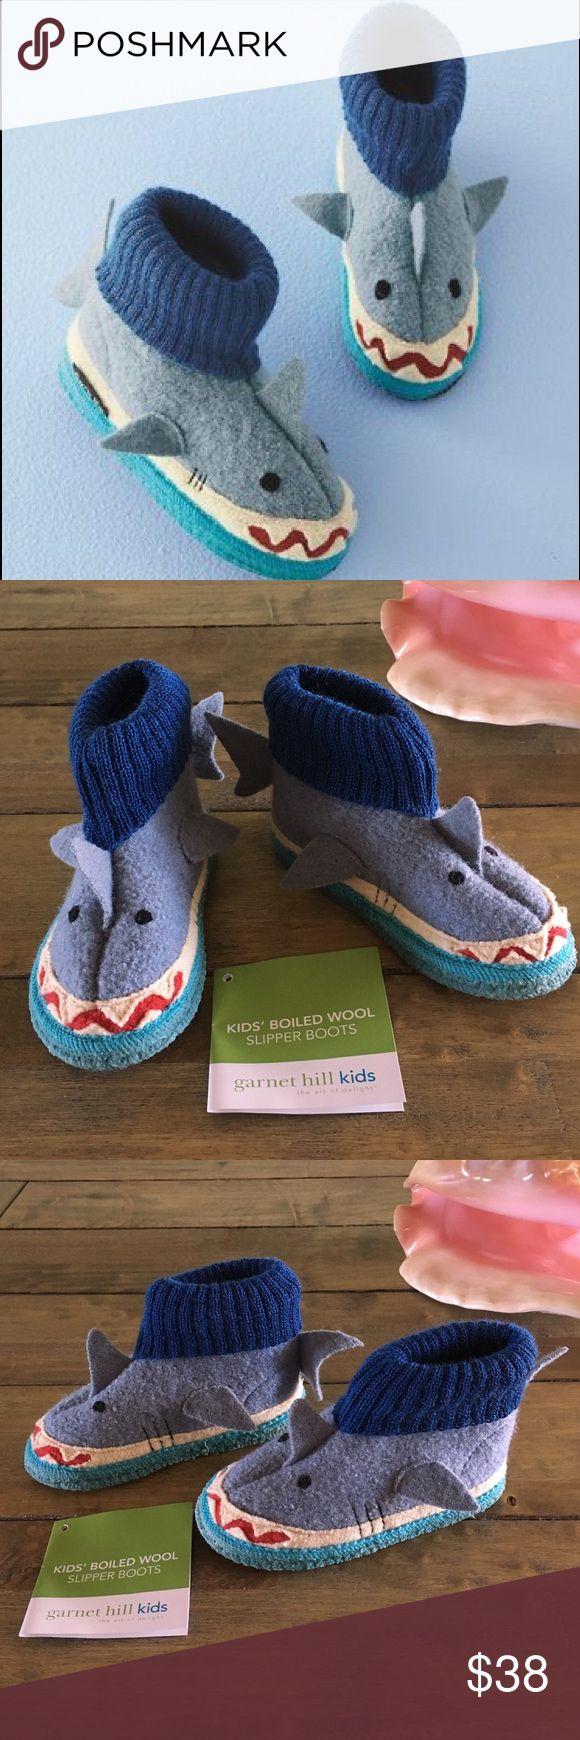 "🦈Garnet Hill Baby/Toddler Shark Slipper Boots🦈 🦈Super Cute Brand New w/o Box Garnet Hill /BabyToddler Boiled Wool Shark Slipper Boots🦈 UNISEX STYLE! 🦈 Size 07 🦈 Length 7"" 🦈 Handmade Super soft boiled wool boots with knit cuffs 🦈 Designed for INDOOR wear! Please read details in pic 8 🦈 Latex dots on bottoms and hard but bendable soles 🦈 Flexible wool & cuffs makes them easy to put on & take off 🦈 Never worn, no flaws!! 🦈 Sold out!! 🦈 Have soft shark fins on top, sides and backs…"